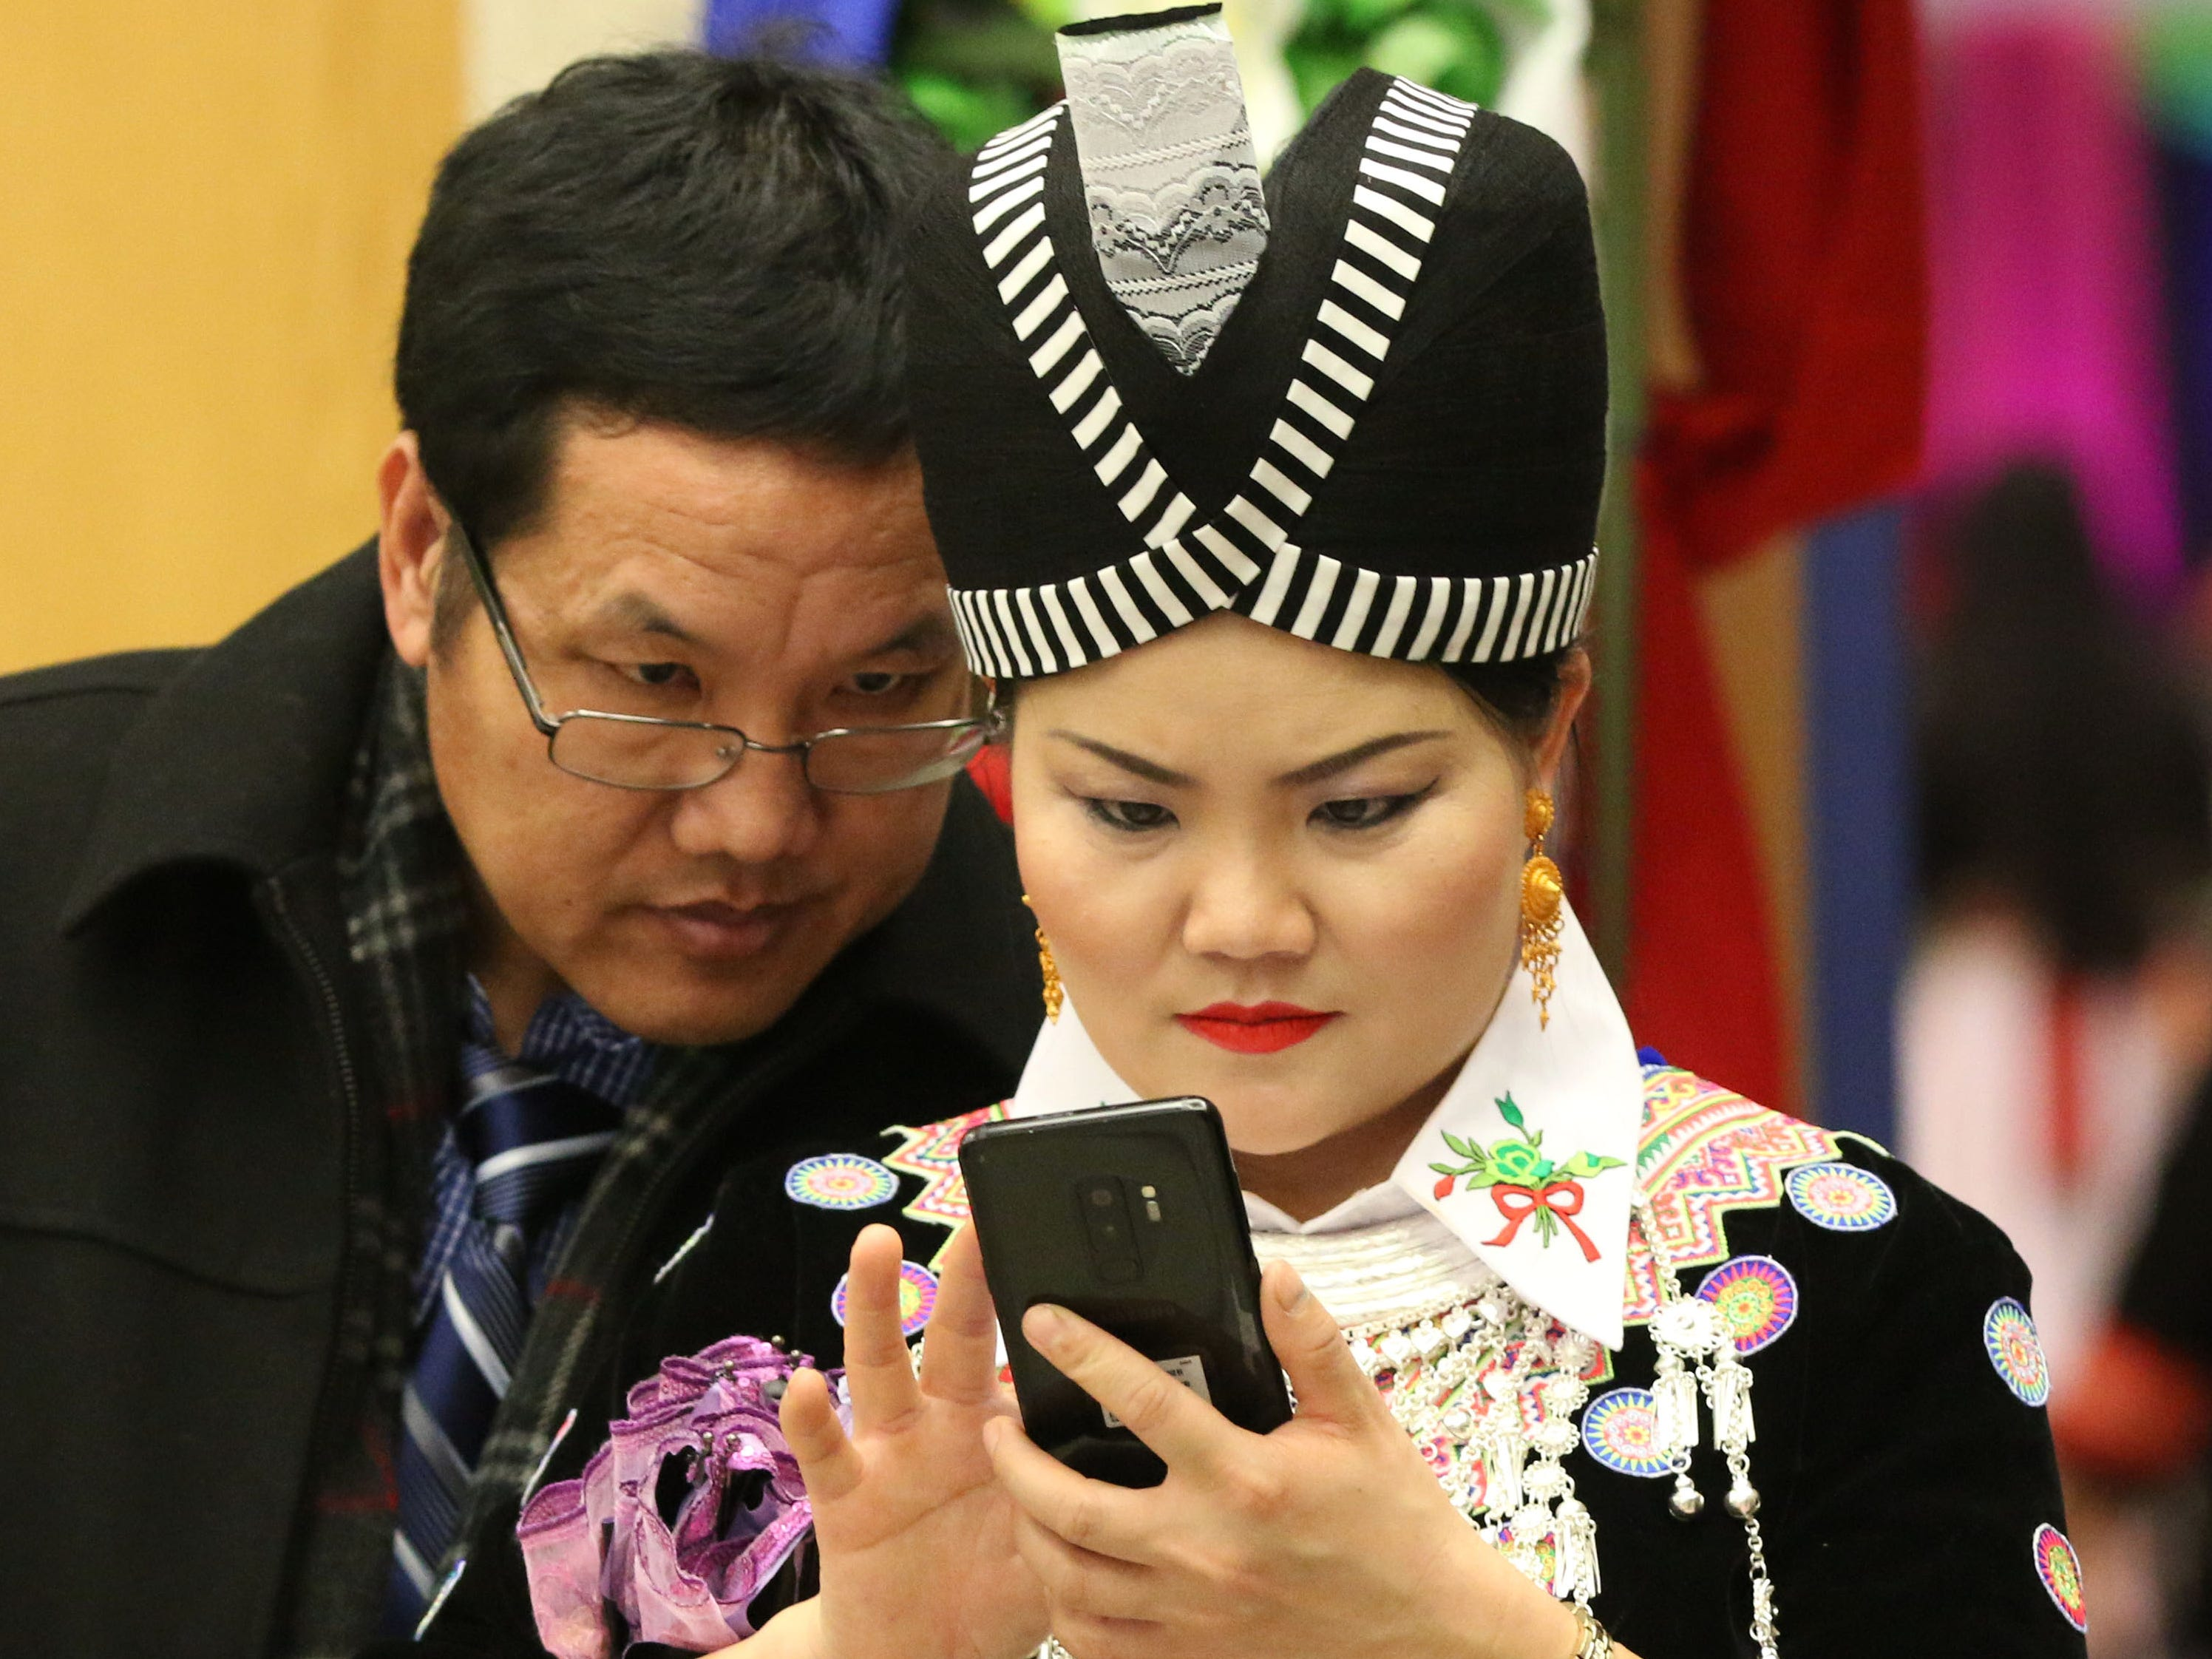 Pao Lee and Pa Houa Xiong, both of Sheboygan, look over photos on Xiong's phone at the Hmong New Year observance at Sheboygan North High School, Friday, November 23, 2018, in Sheboygan, Wis.